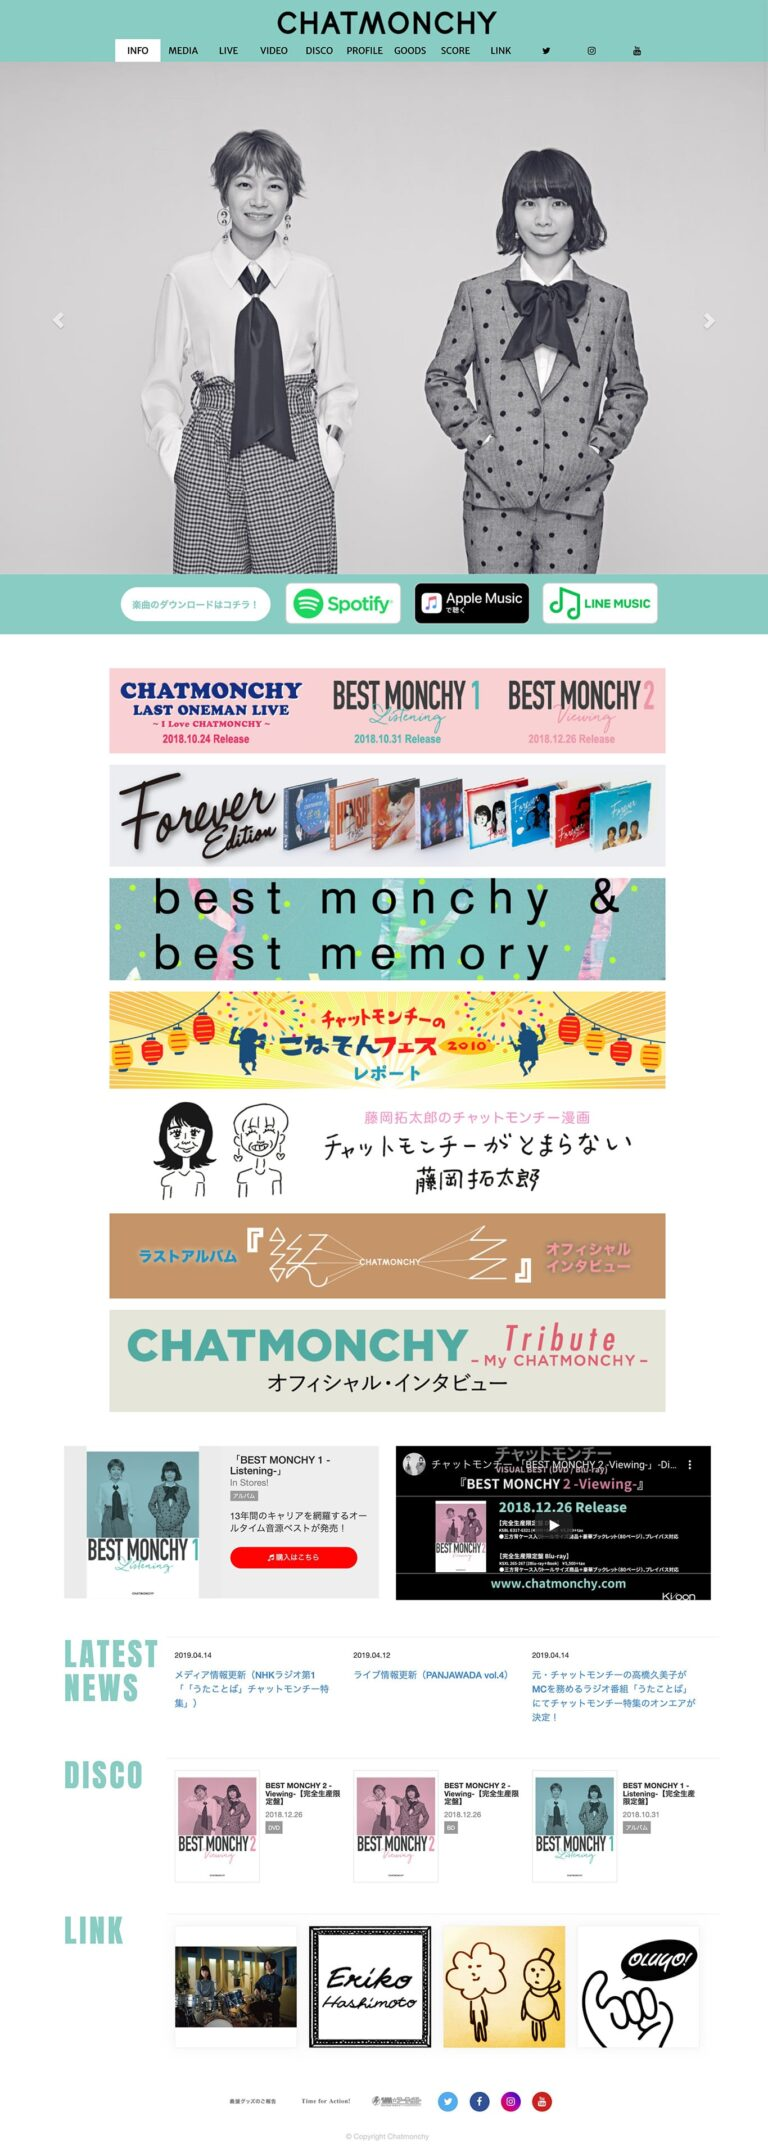 CHATMONCHY チャットモンチー Official Site